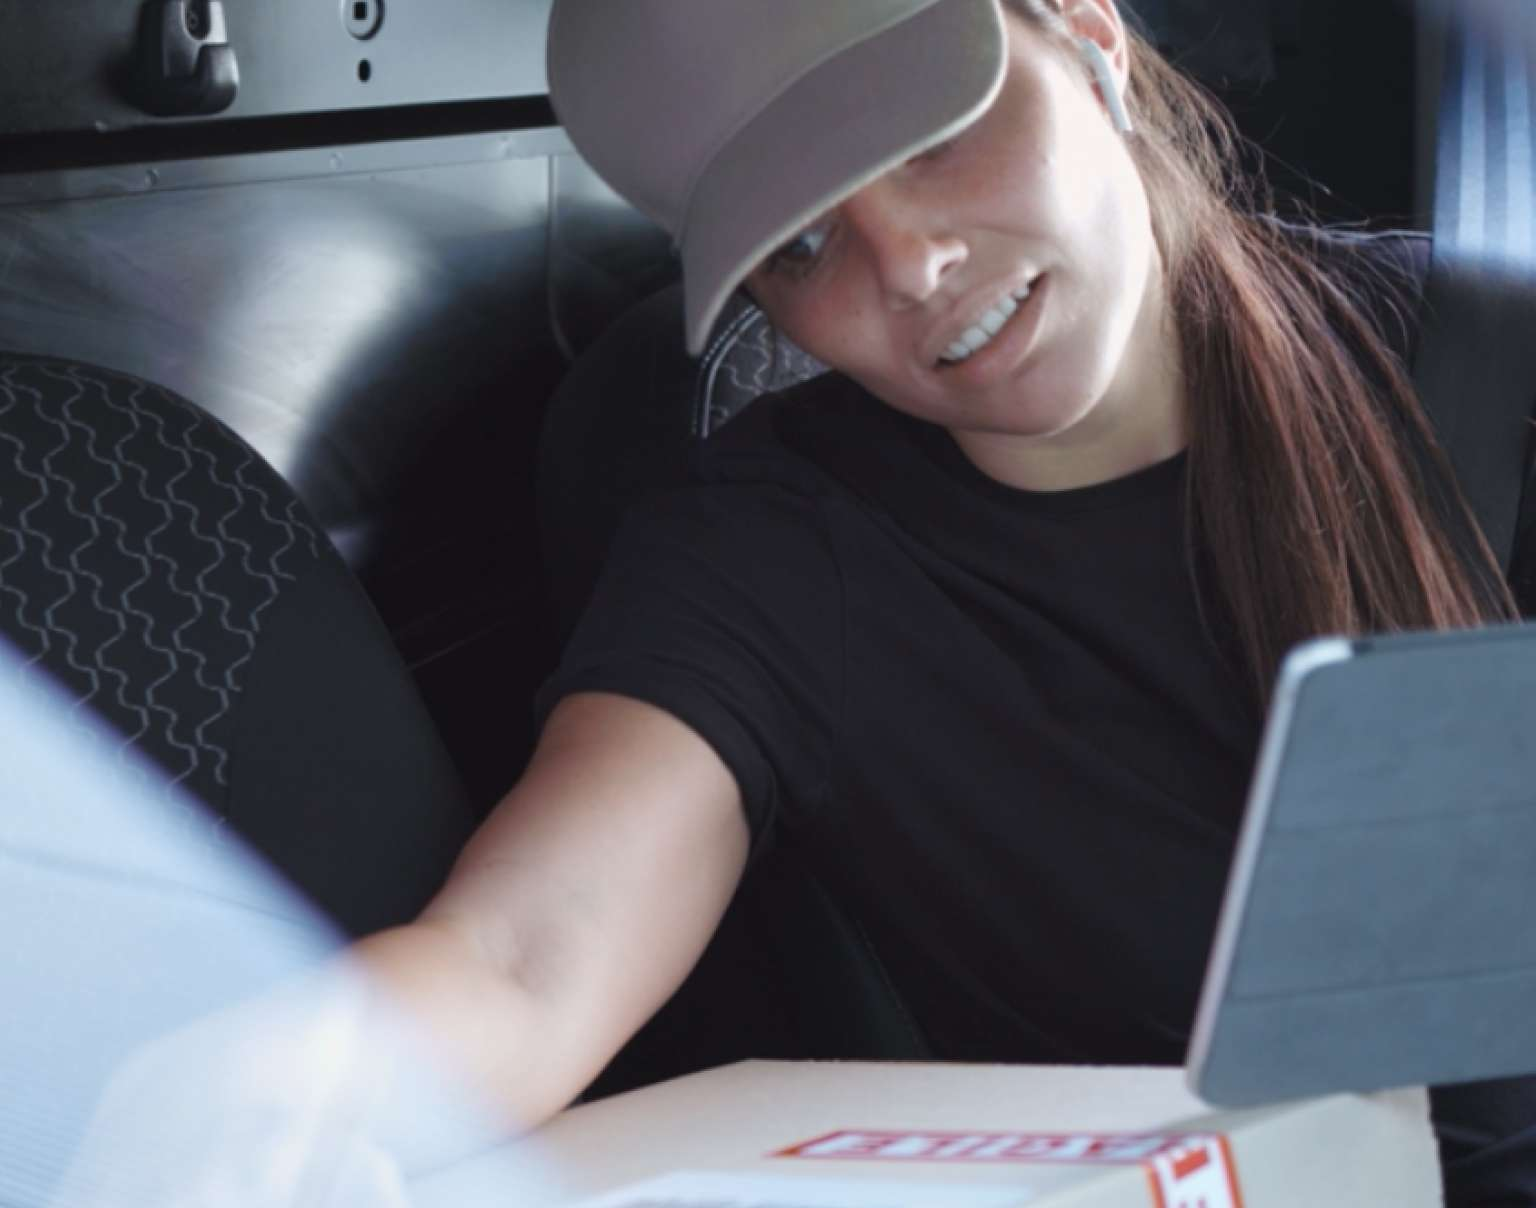 Woman checking packages on a mobile device